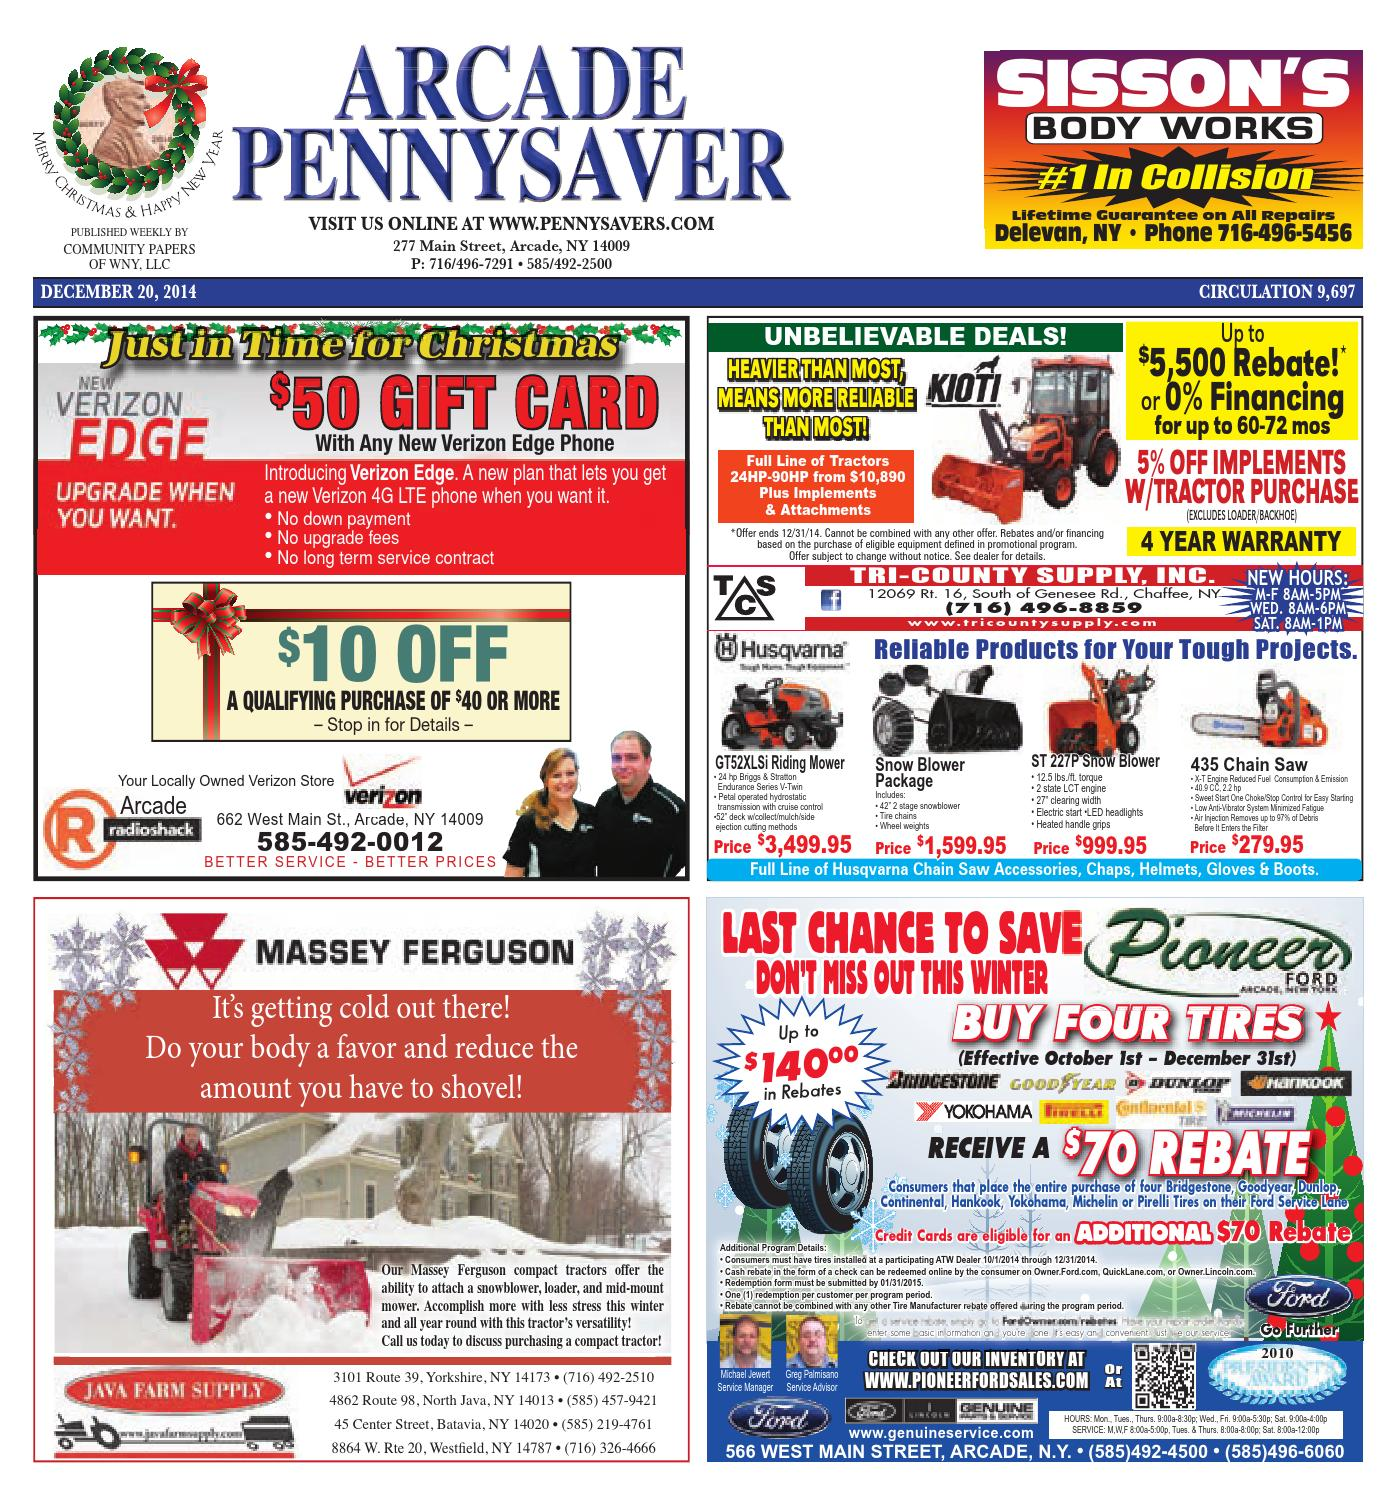 Arcade pennysaver 12 20 2014 by munity Papers of WNY issuu